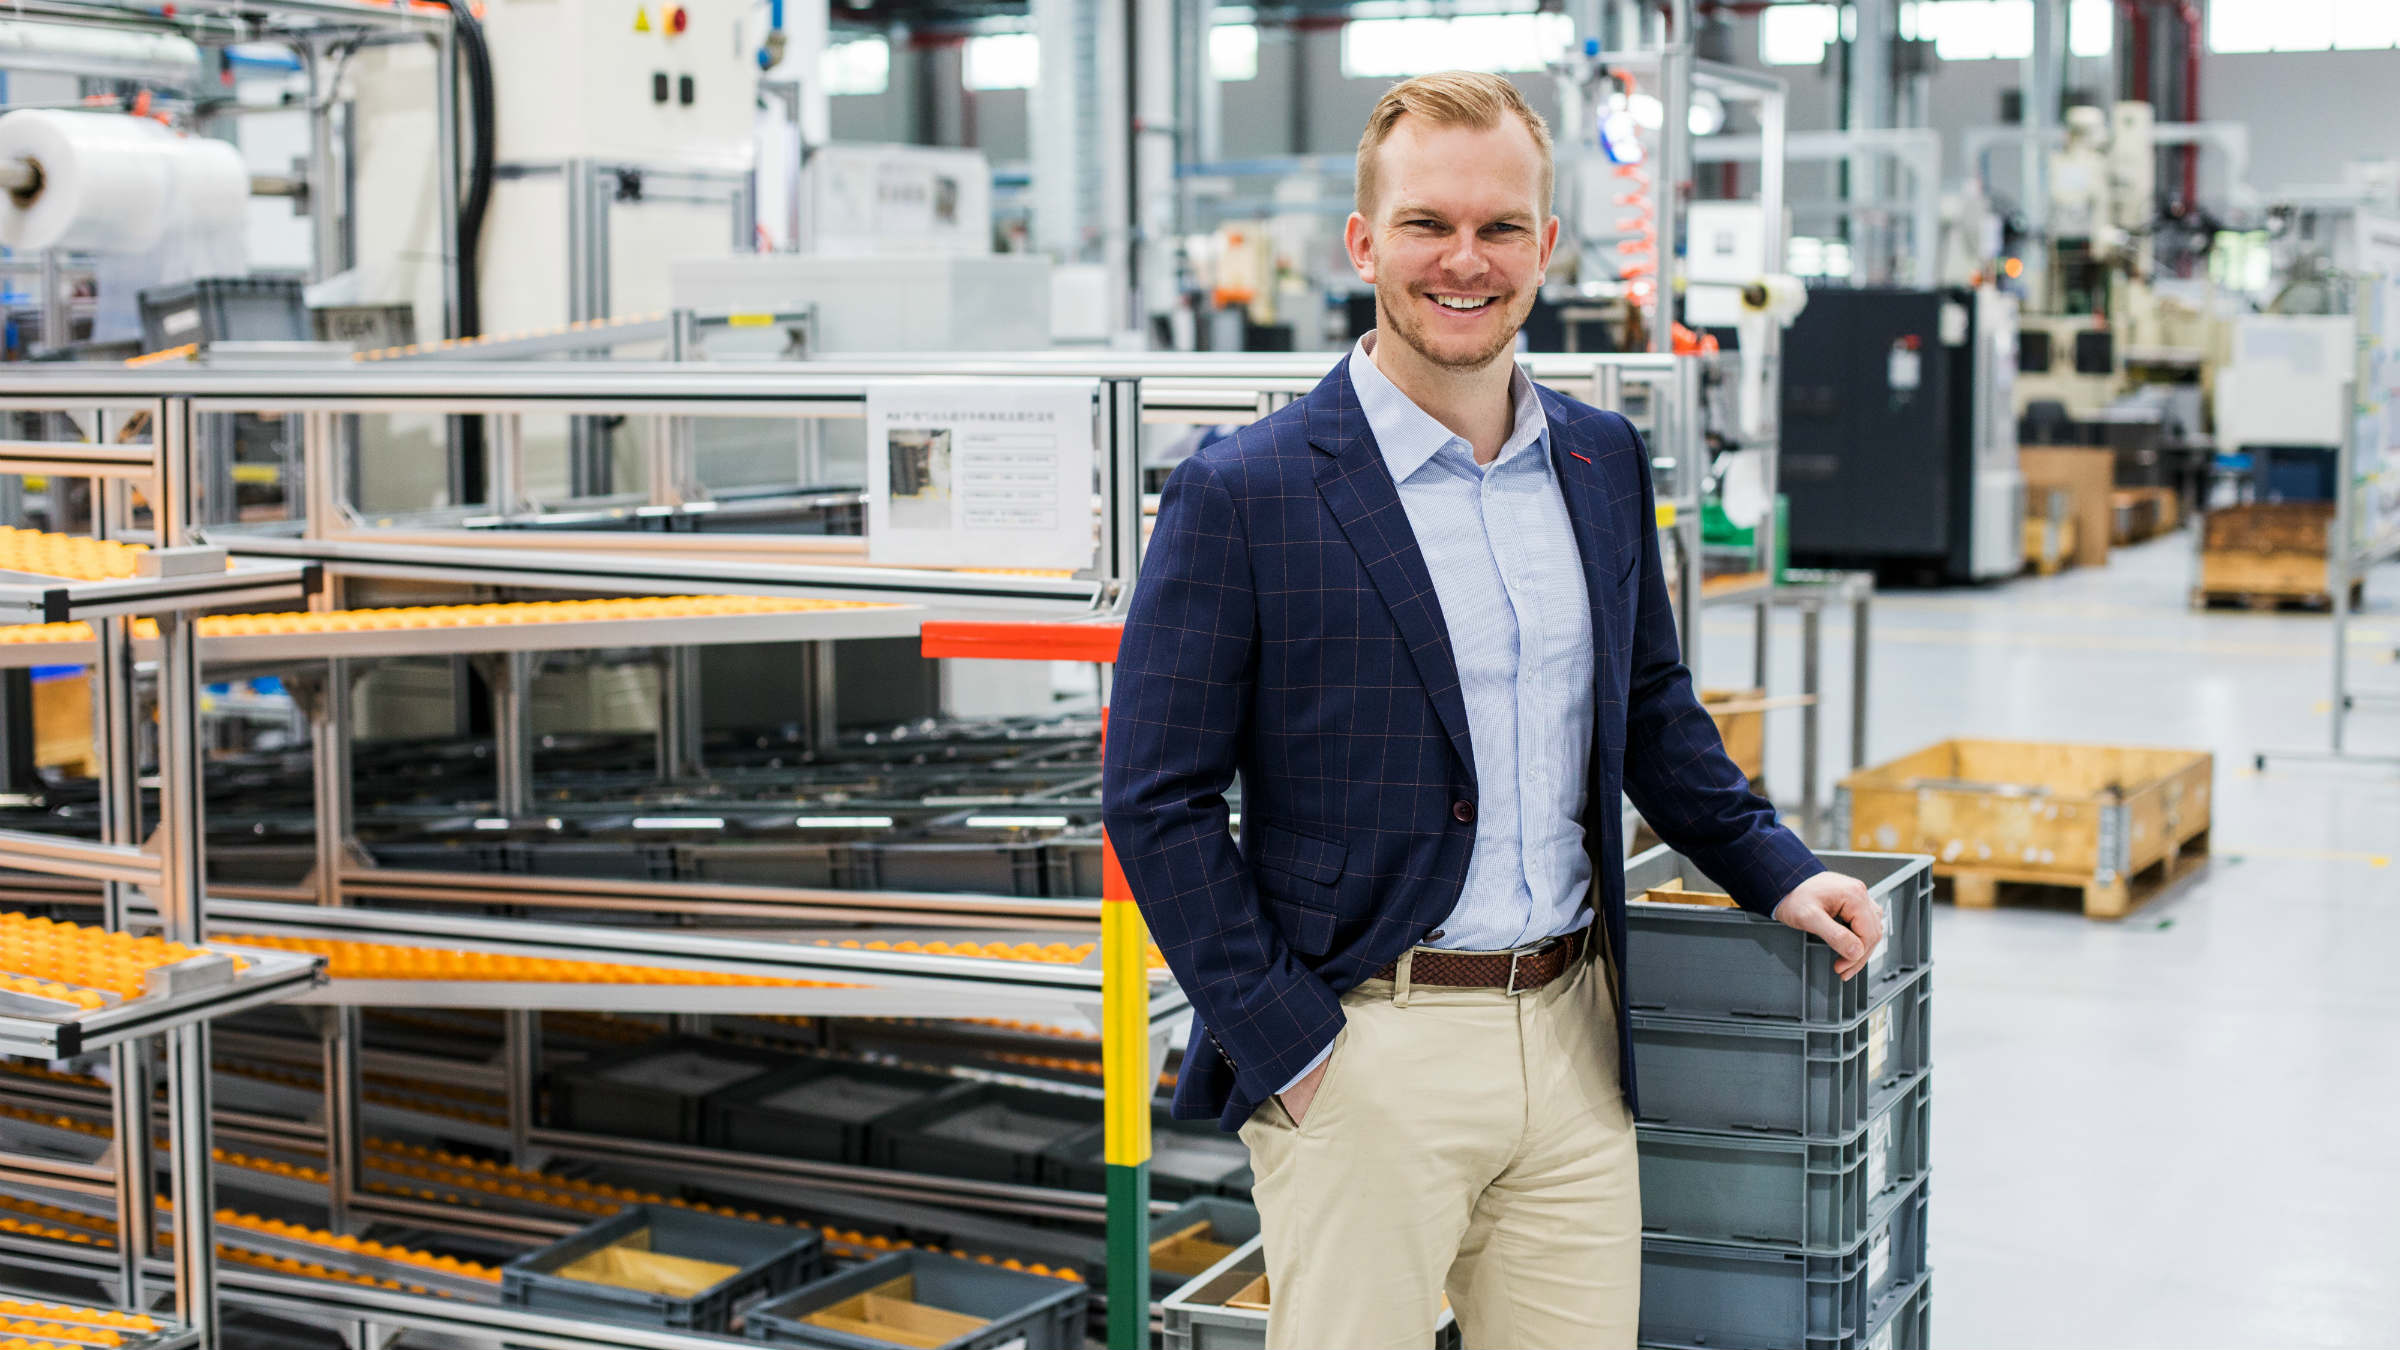 Soeren de Boon, Head of Supply Chain & Production for GEA in Suzhou, China